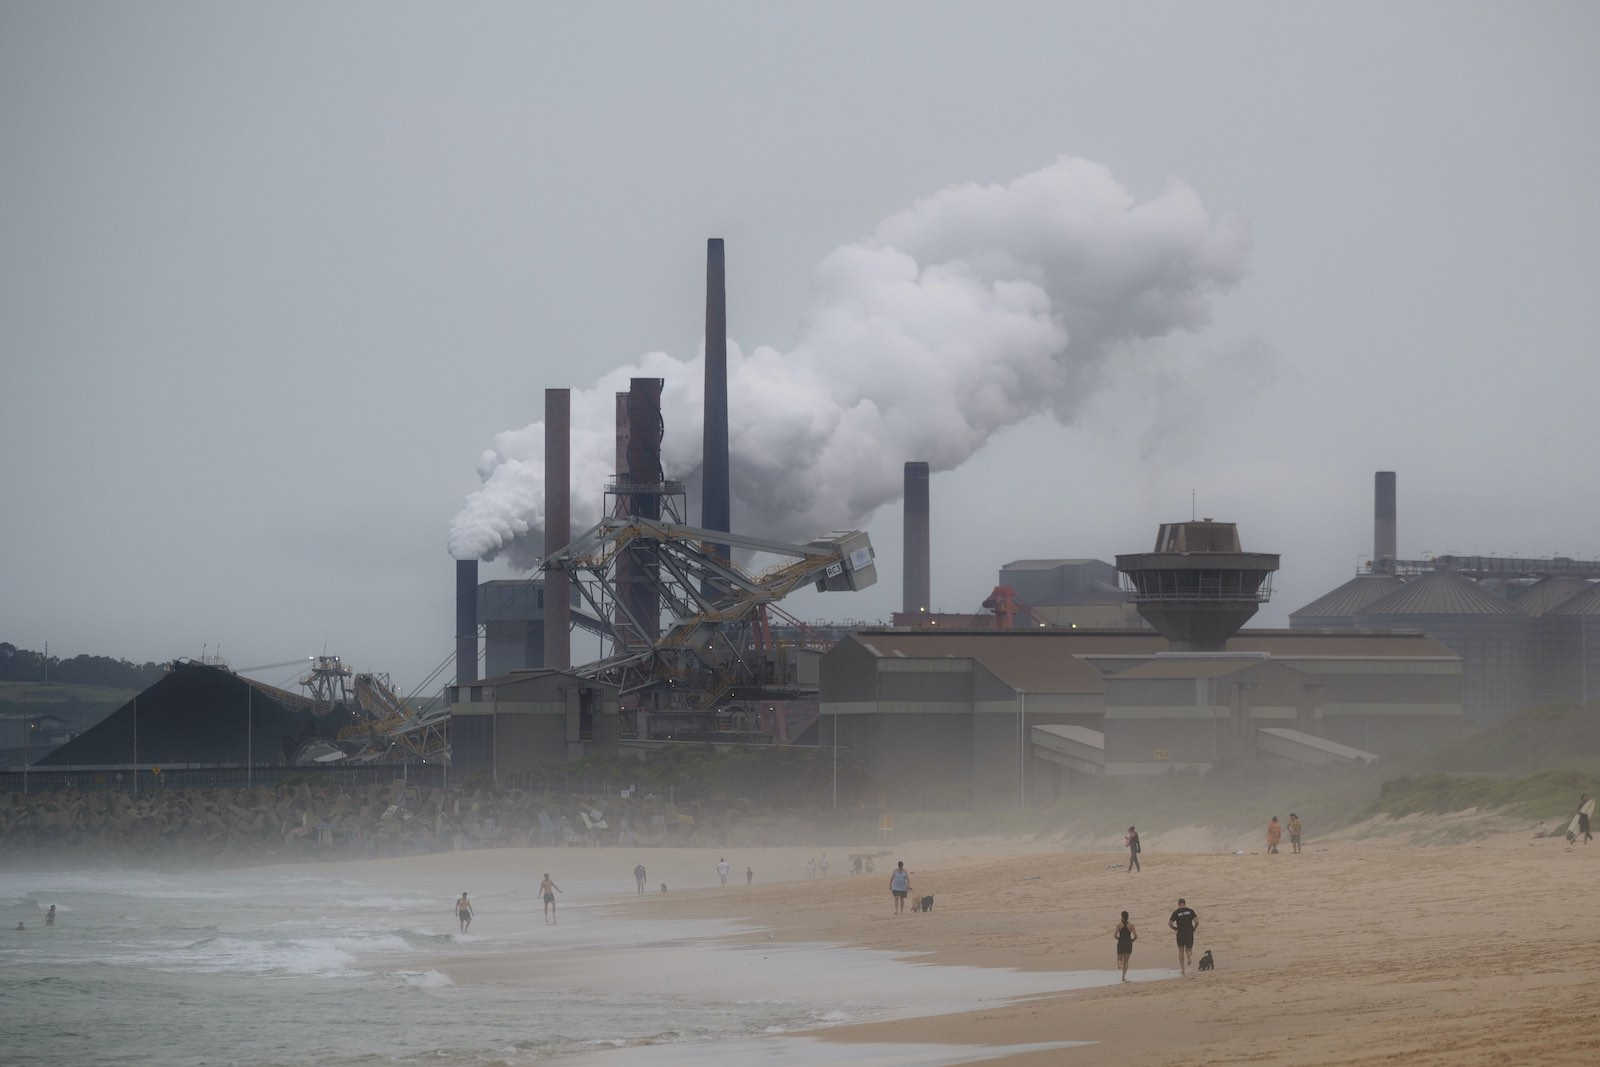 Steelworks and coal loading facility in Port Kembla, New South Wales, Australia, on 1 February 2021 (Brook Mitchell/Getty Images)